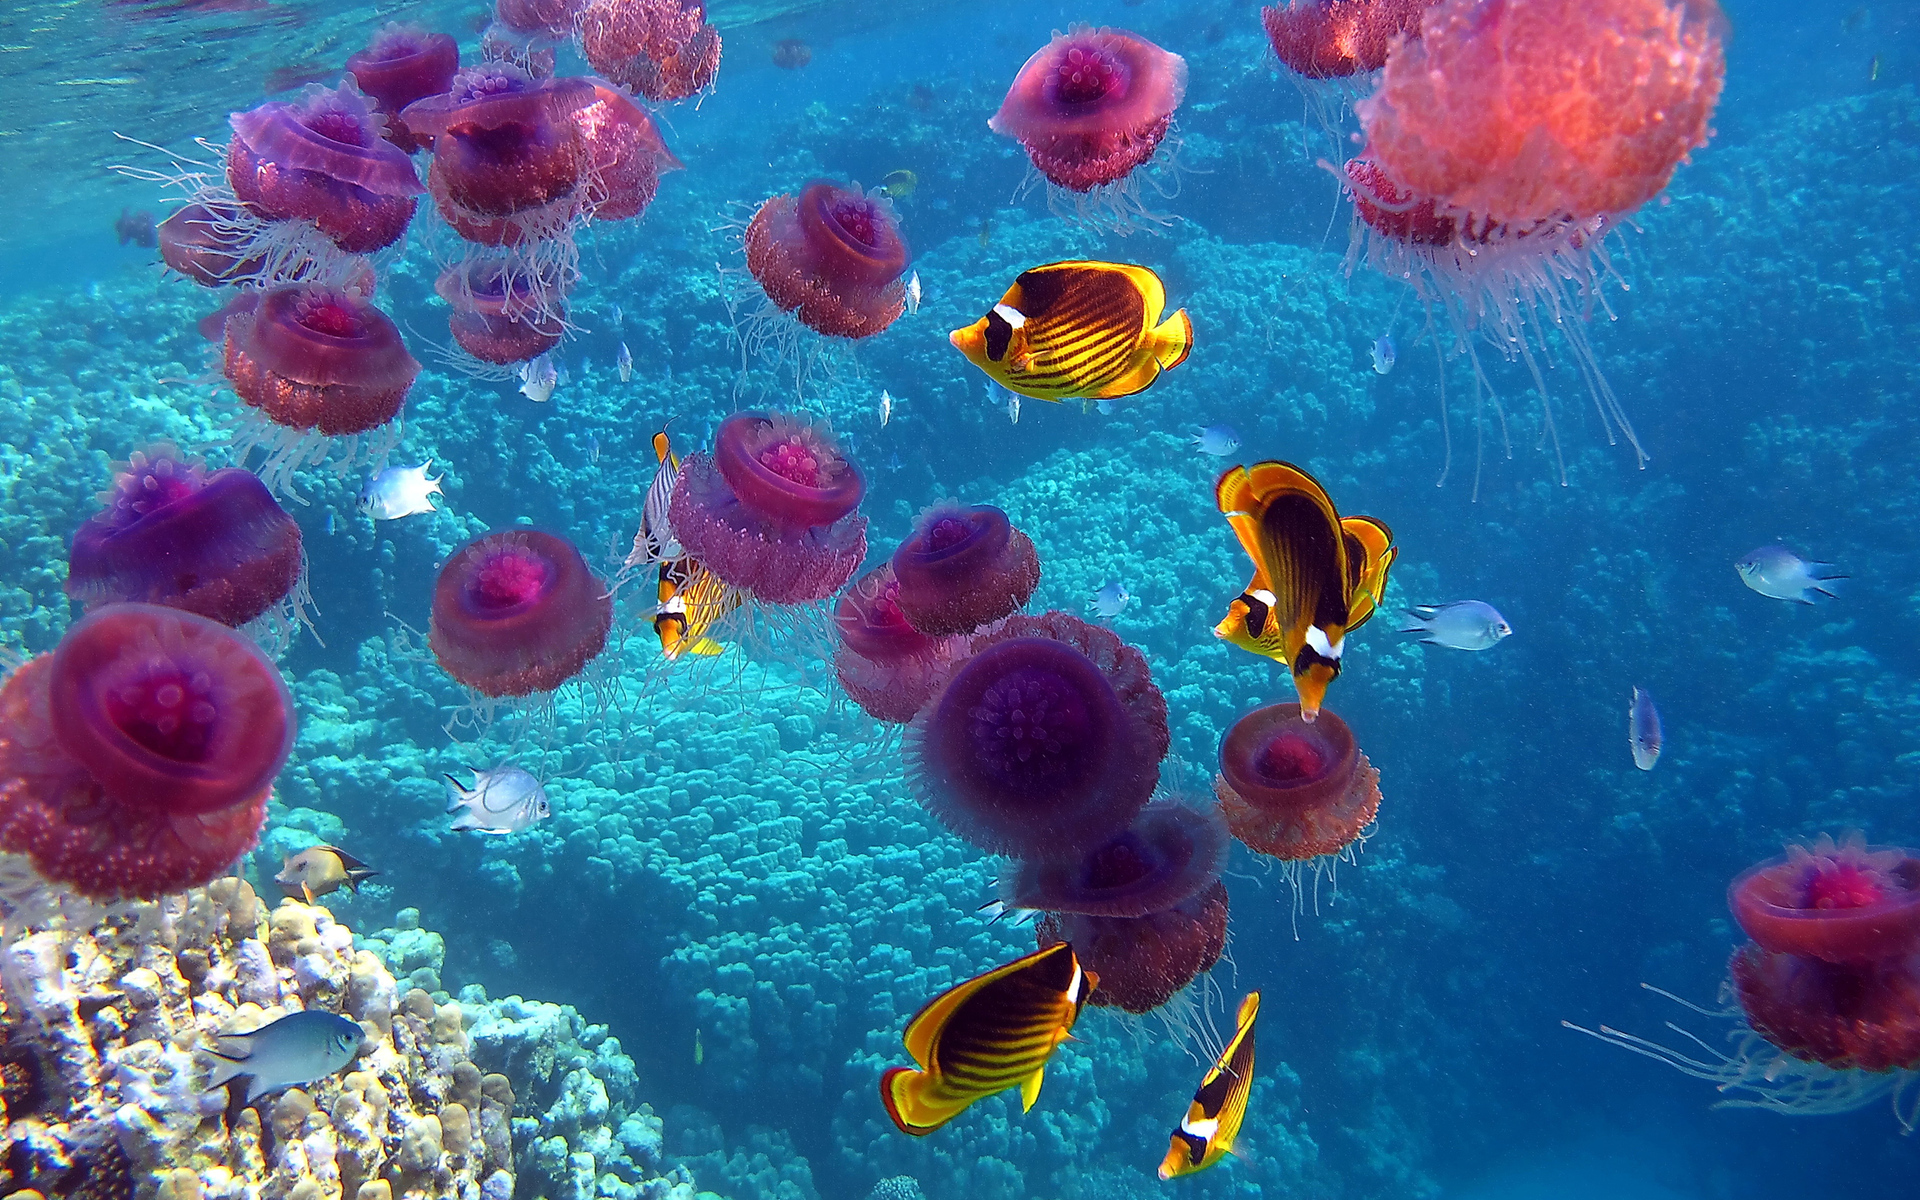 Underwater wallpapers photos and desktop backgrounds up - Jellyfish hd images ...